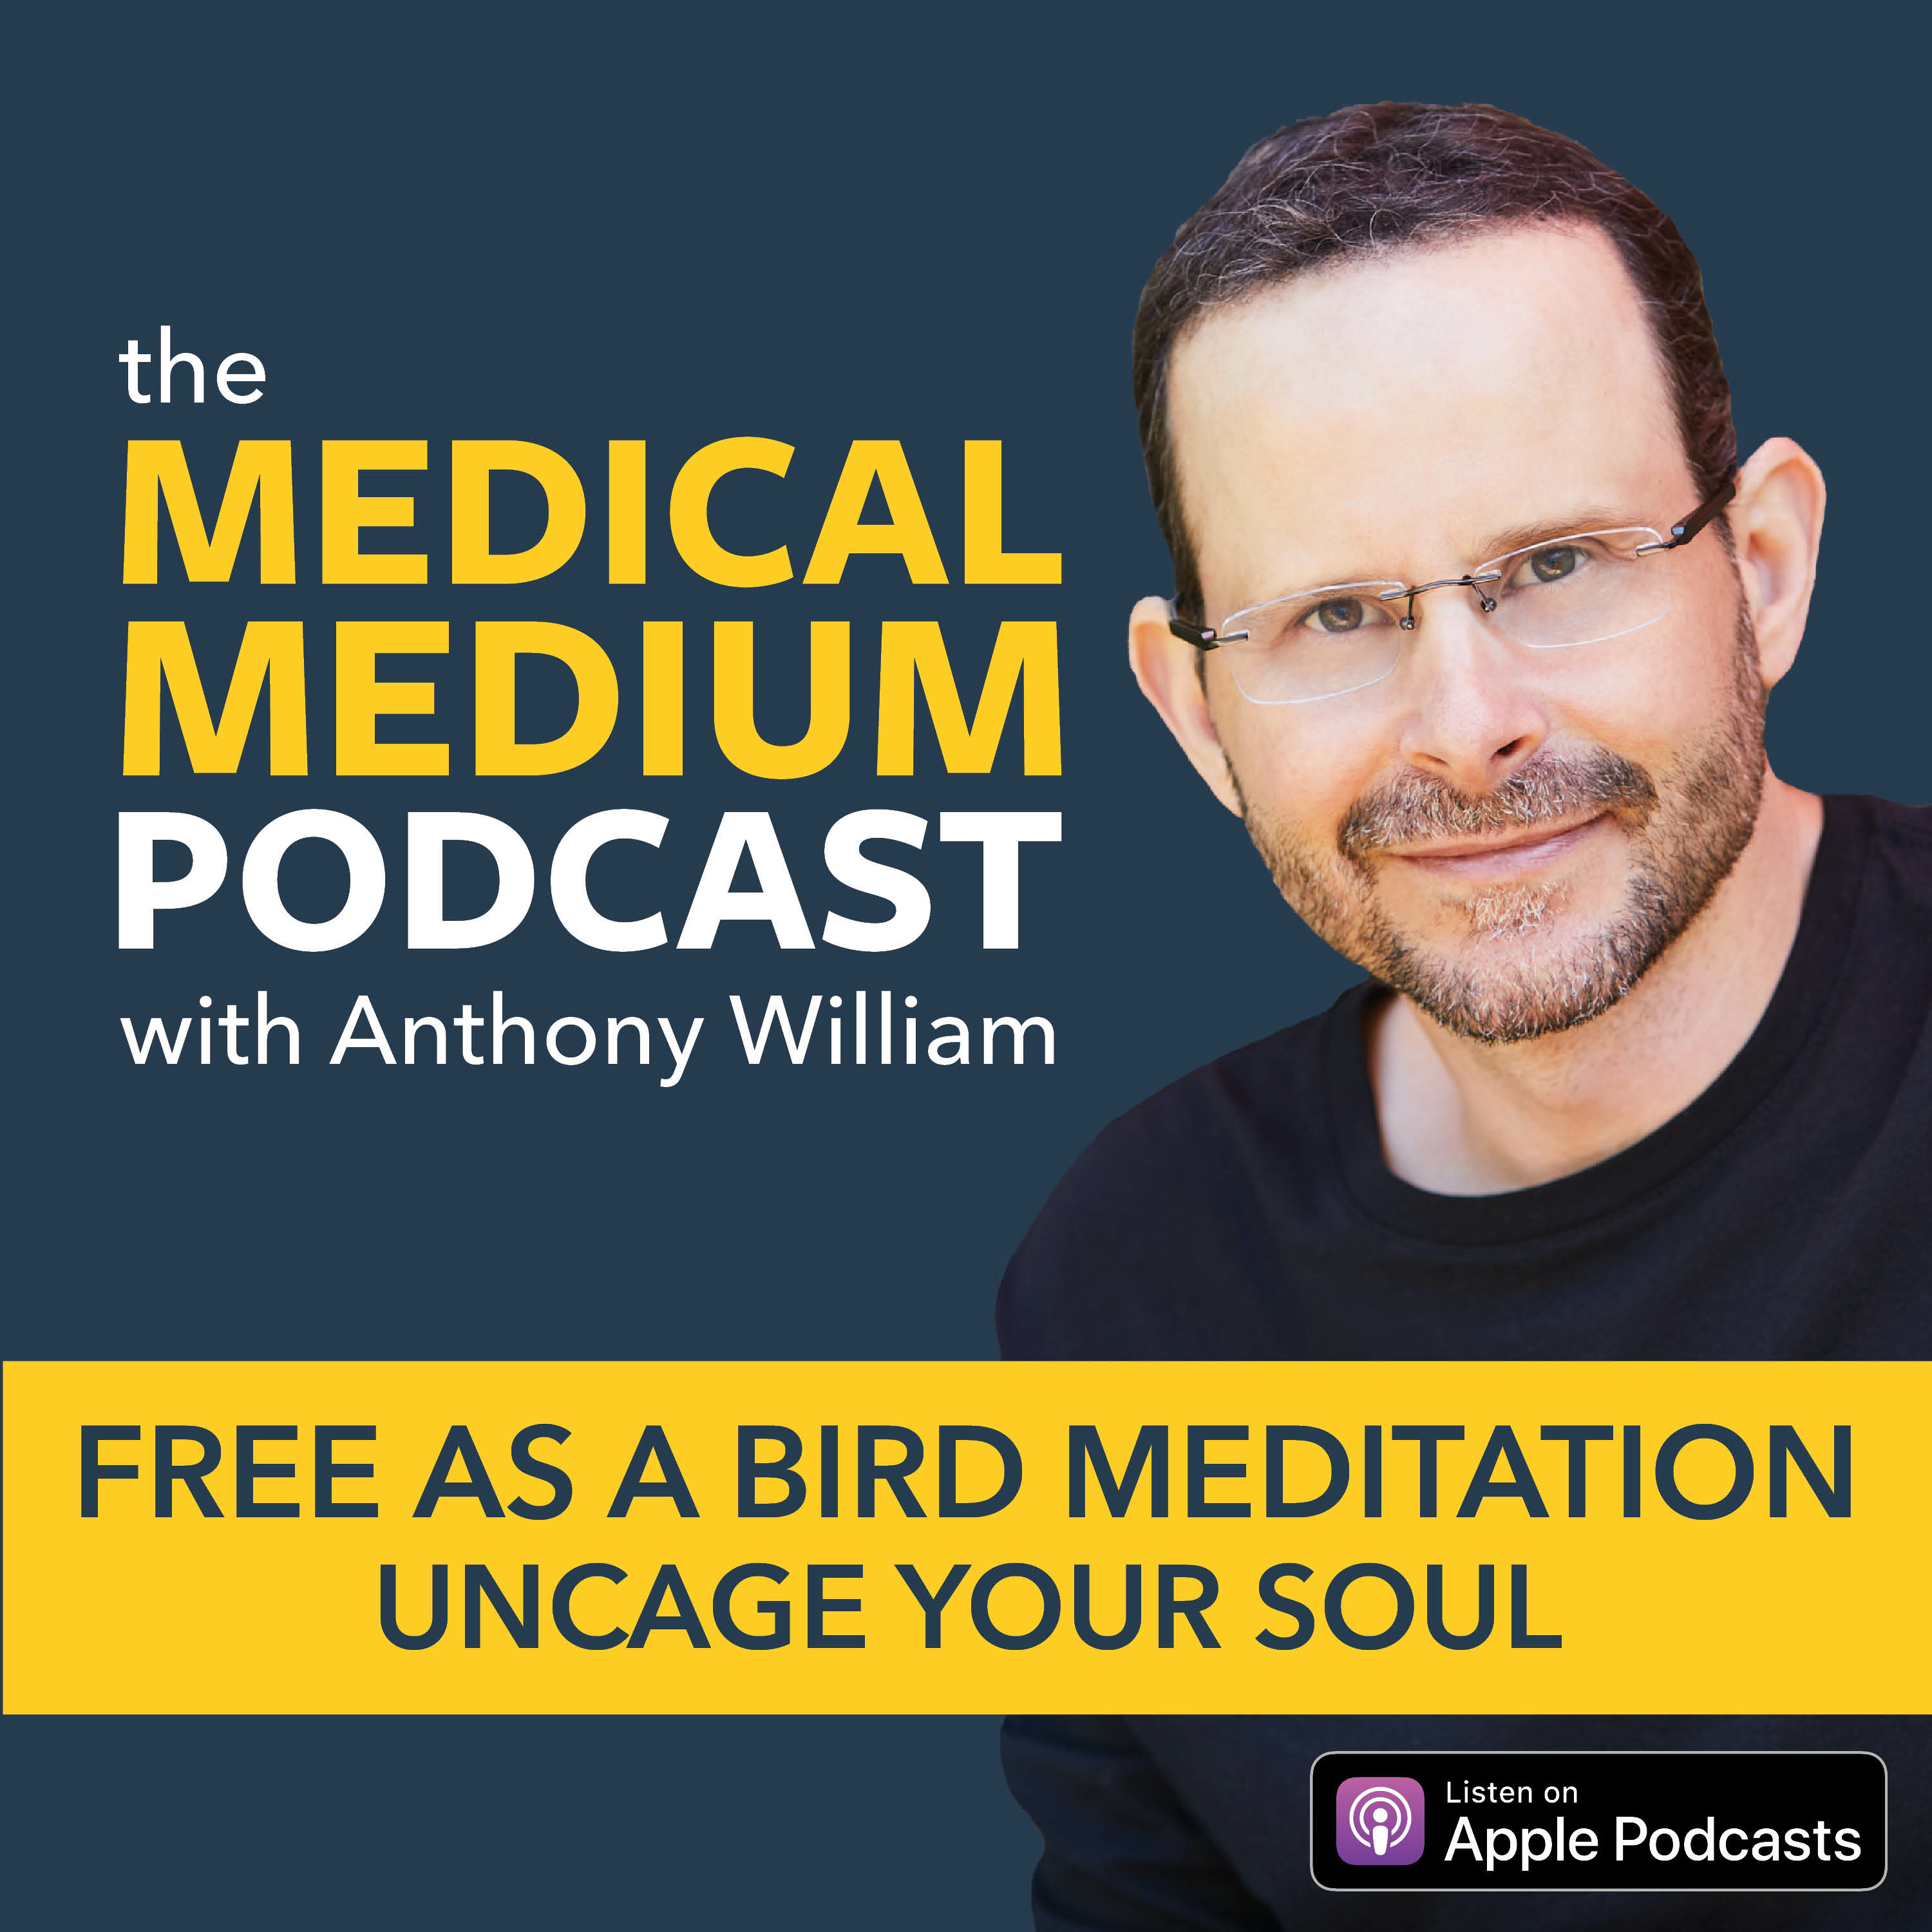 008 Free As A Bird Meditation: Uncage Your Soul